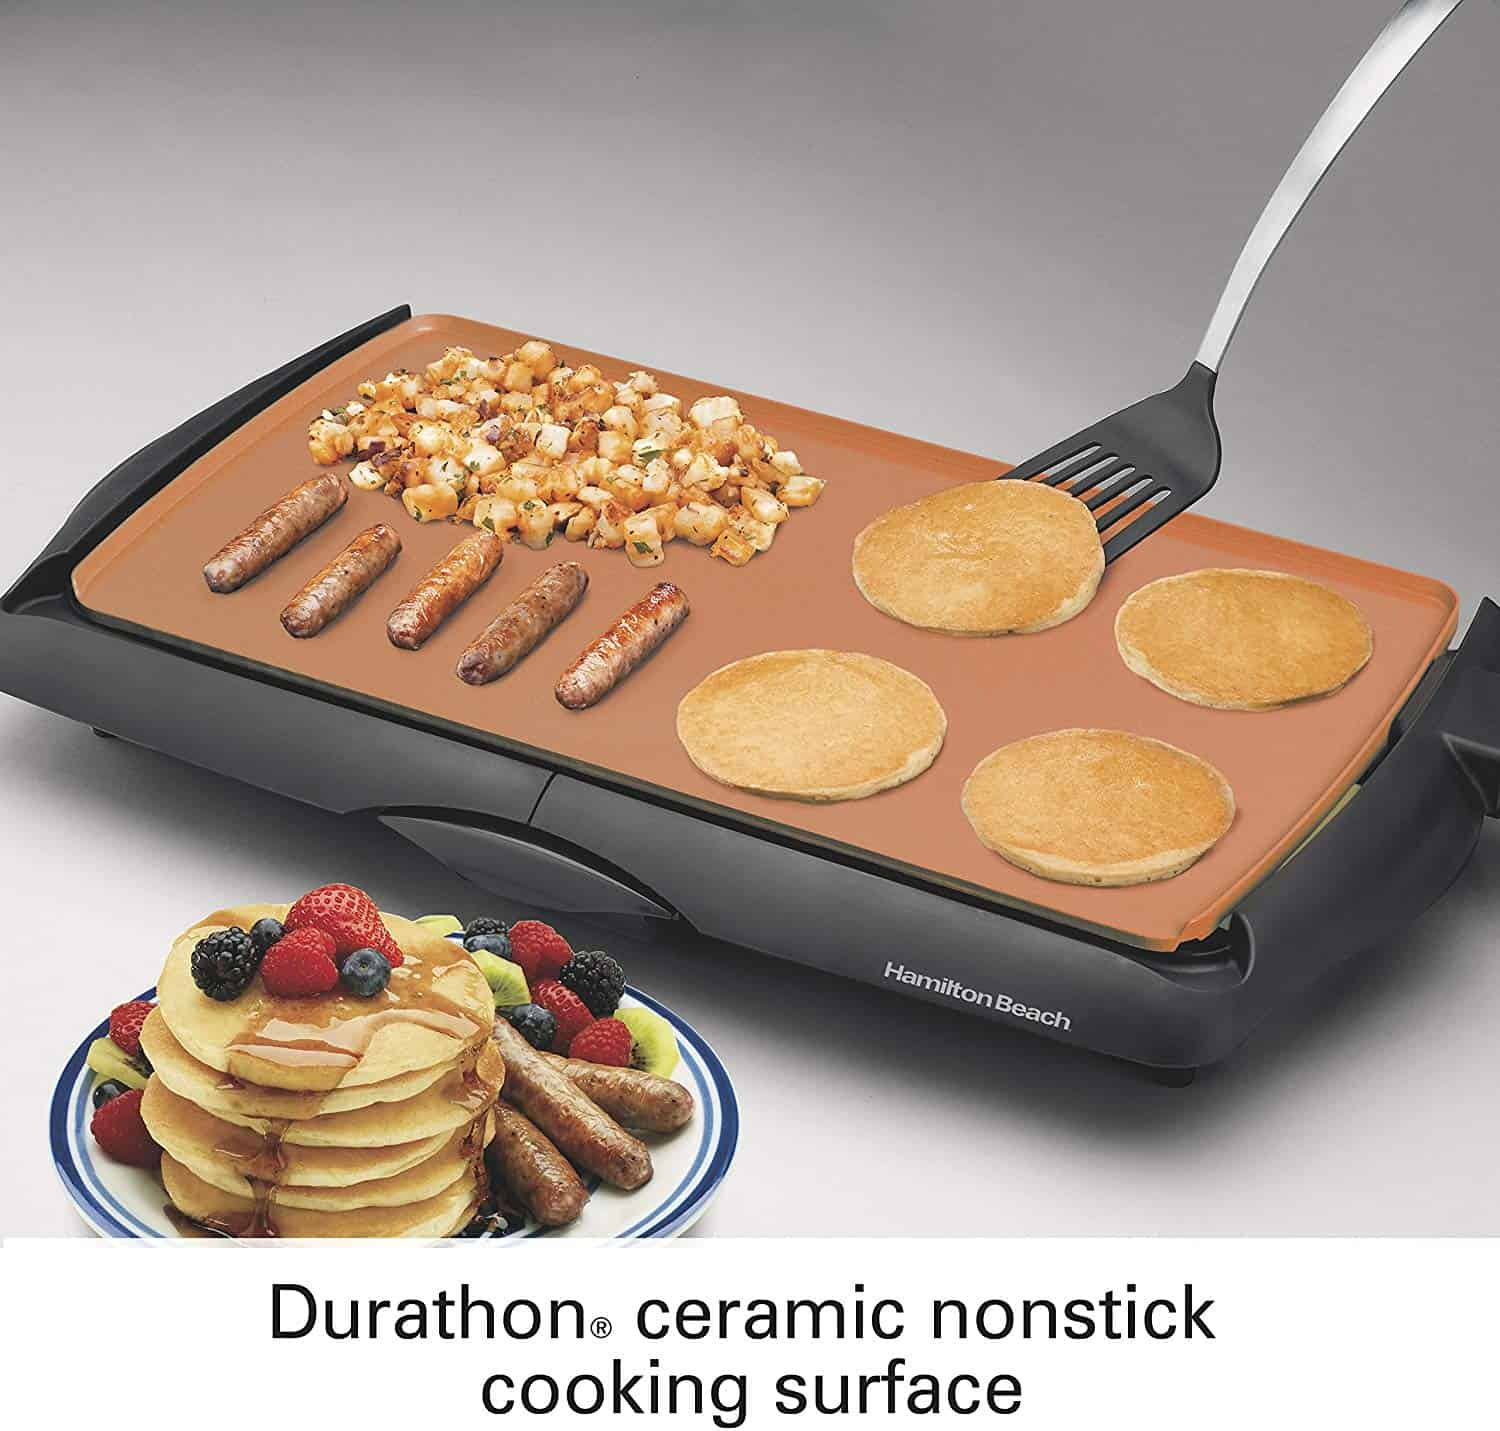 A Review Of The Hamilton Beach Durathon Electric Griddle Ceramic Cooking Surface